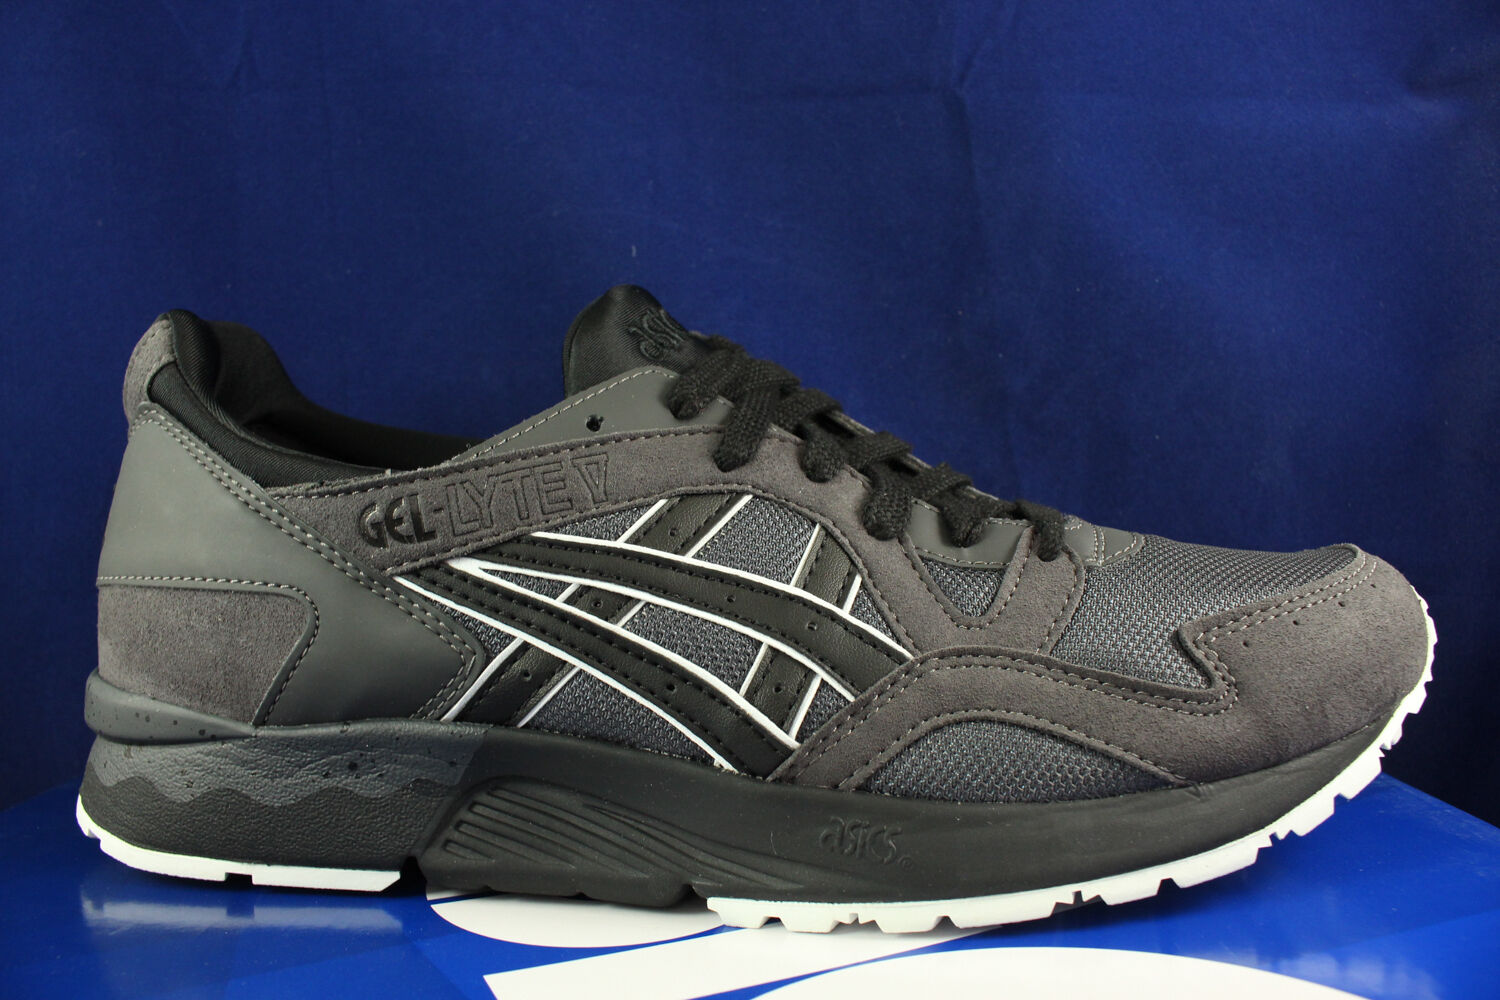 ASICS GEL LYTE V WHITE 5 DARK GREY BLACK WHITE V HN6A4 1690 SZ 13 d76579